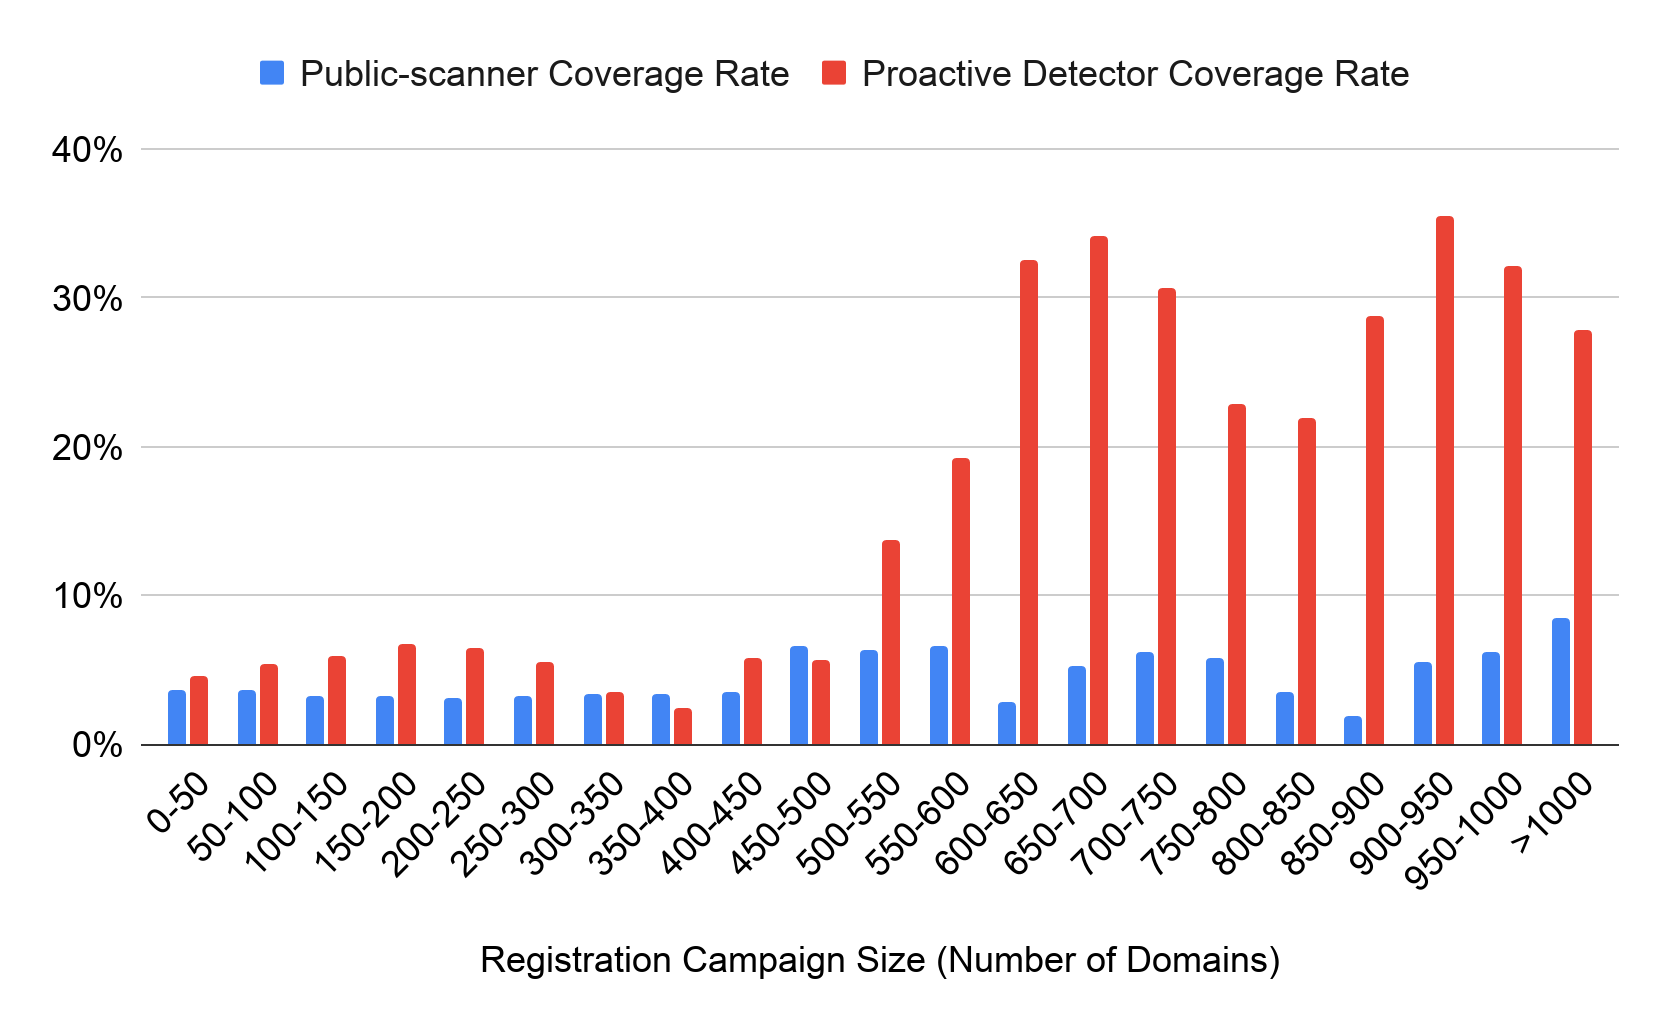 The x-axis represents the registration campaign size, according to number of domains. The y-axis represents percentages. Blue lines are the public scanner coverate rate regarding detection of malicious domains and red lines are the proactive detector coverage rate.